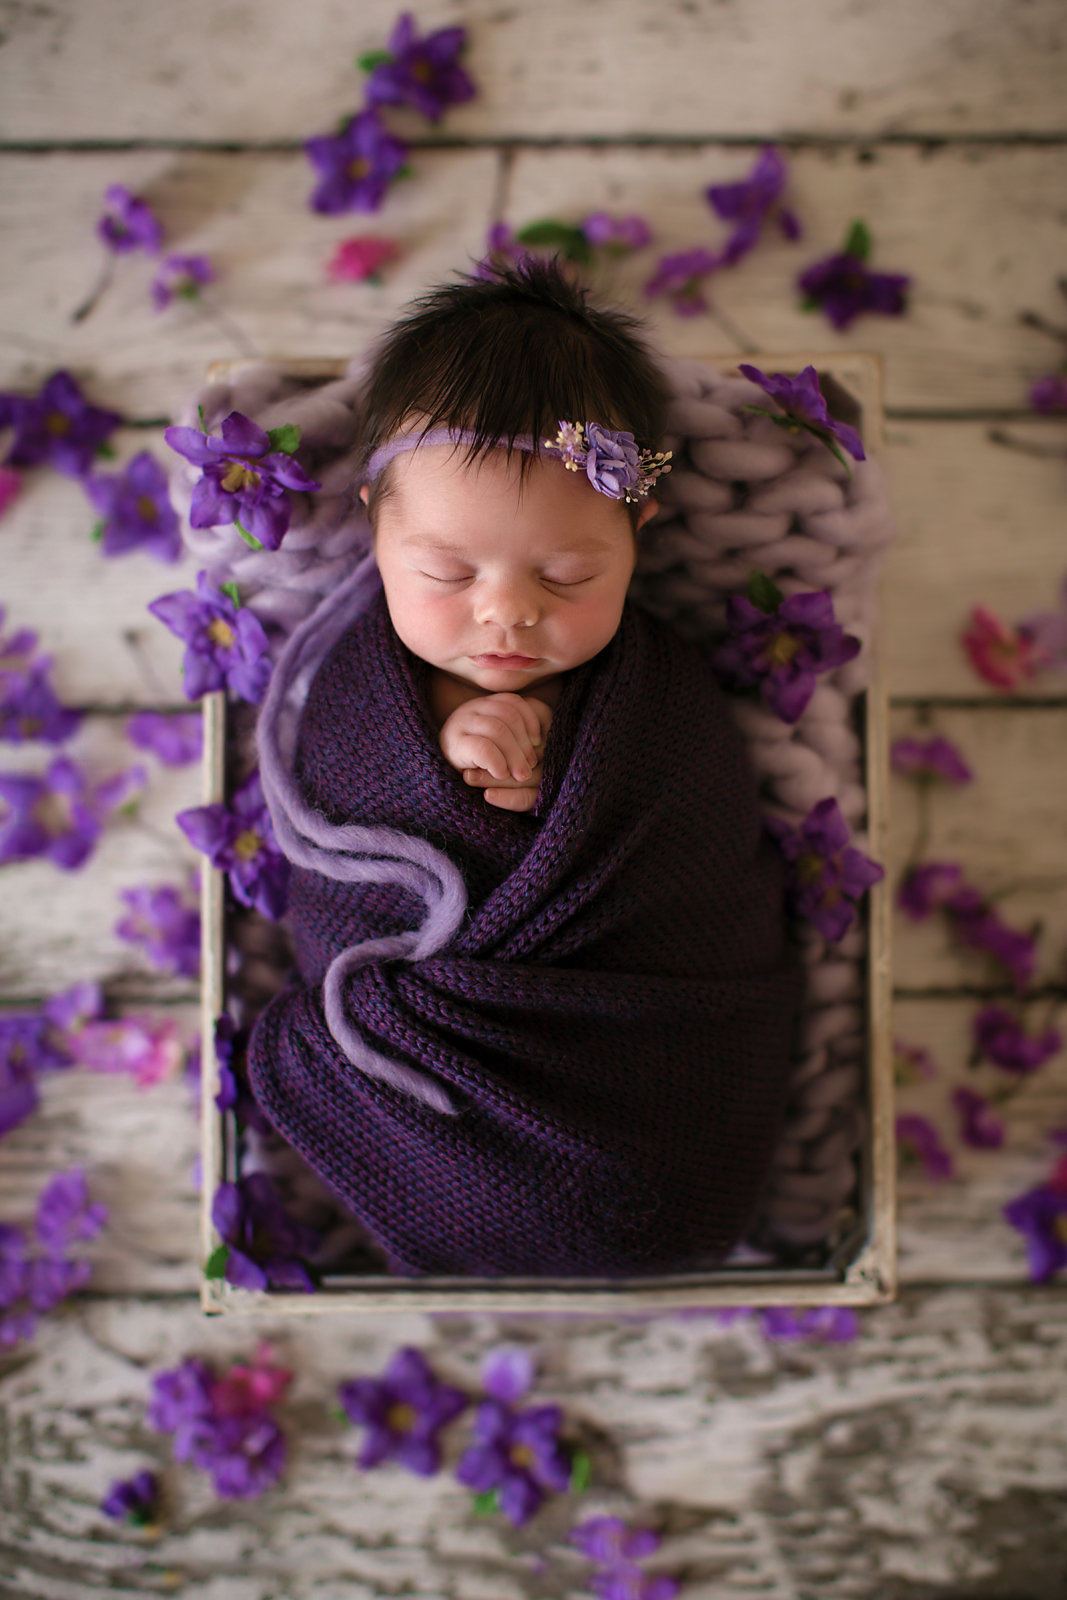 Newborn baby girl photoshoot idea. Baby girl is wrapped in a purple wrap and is surrounded by purple flowers sleeping soundly in a white crate.